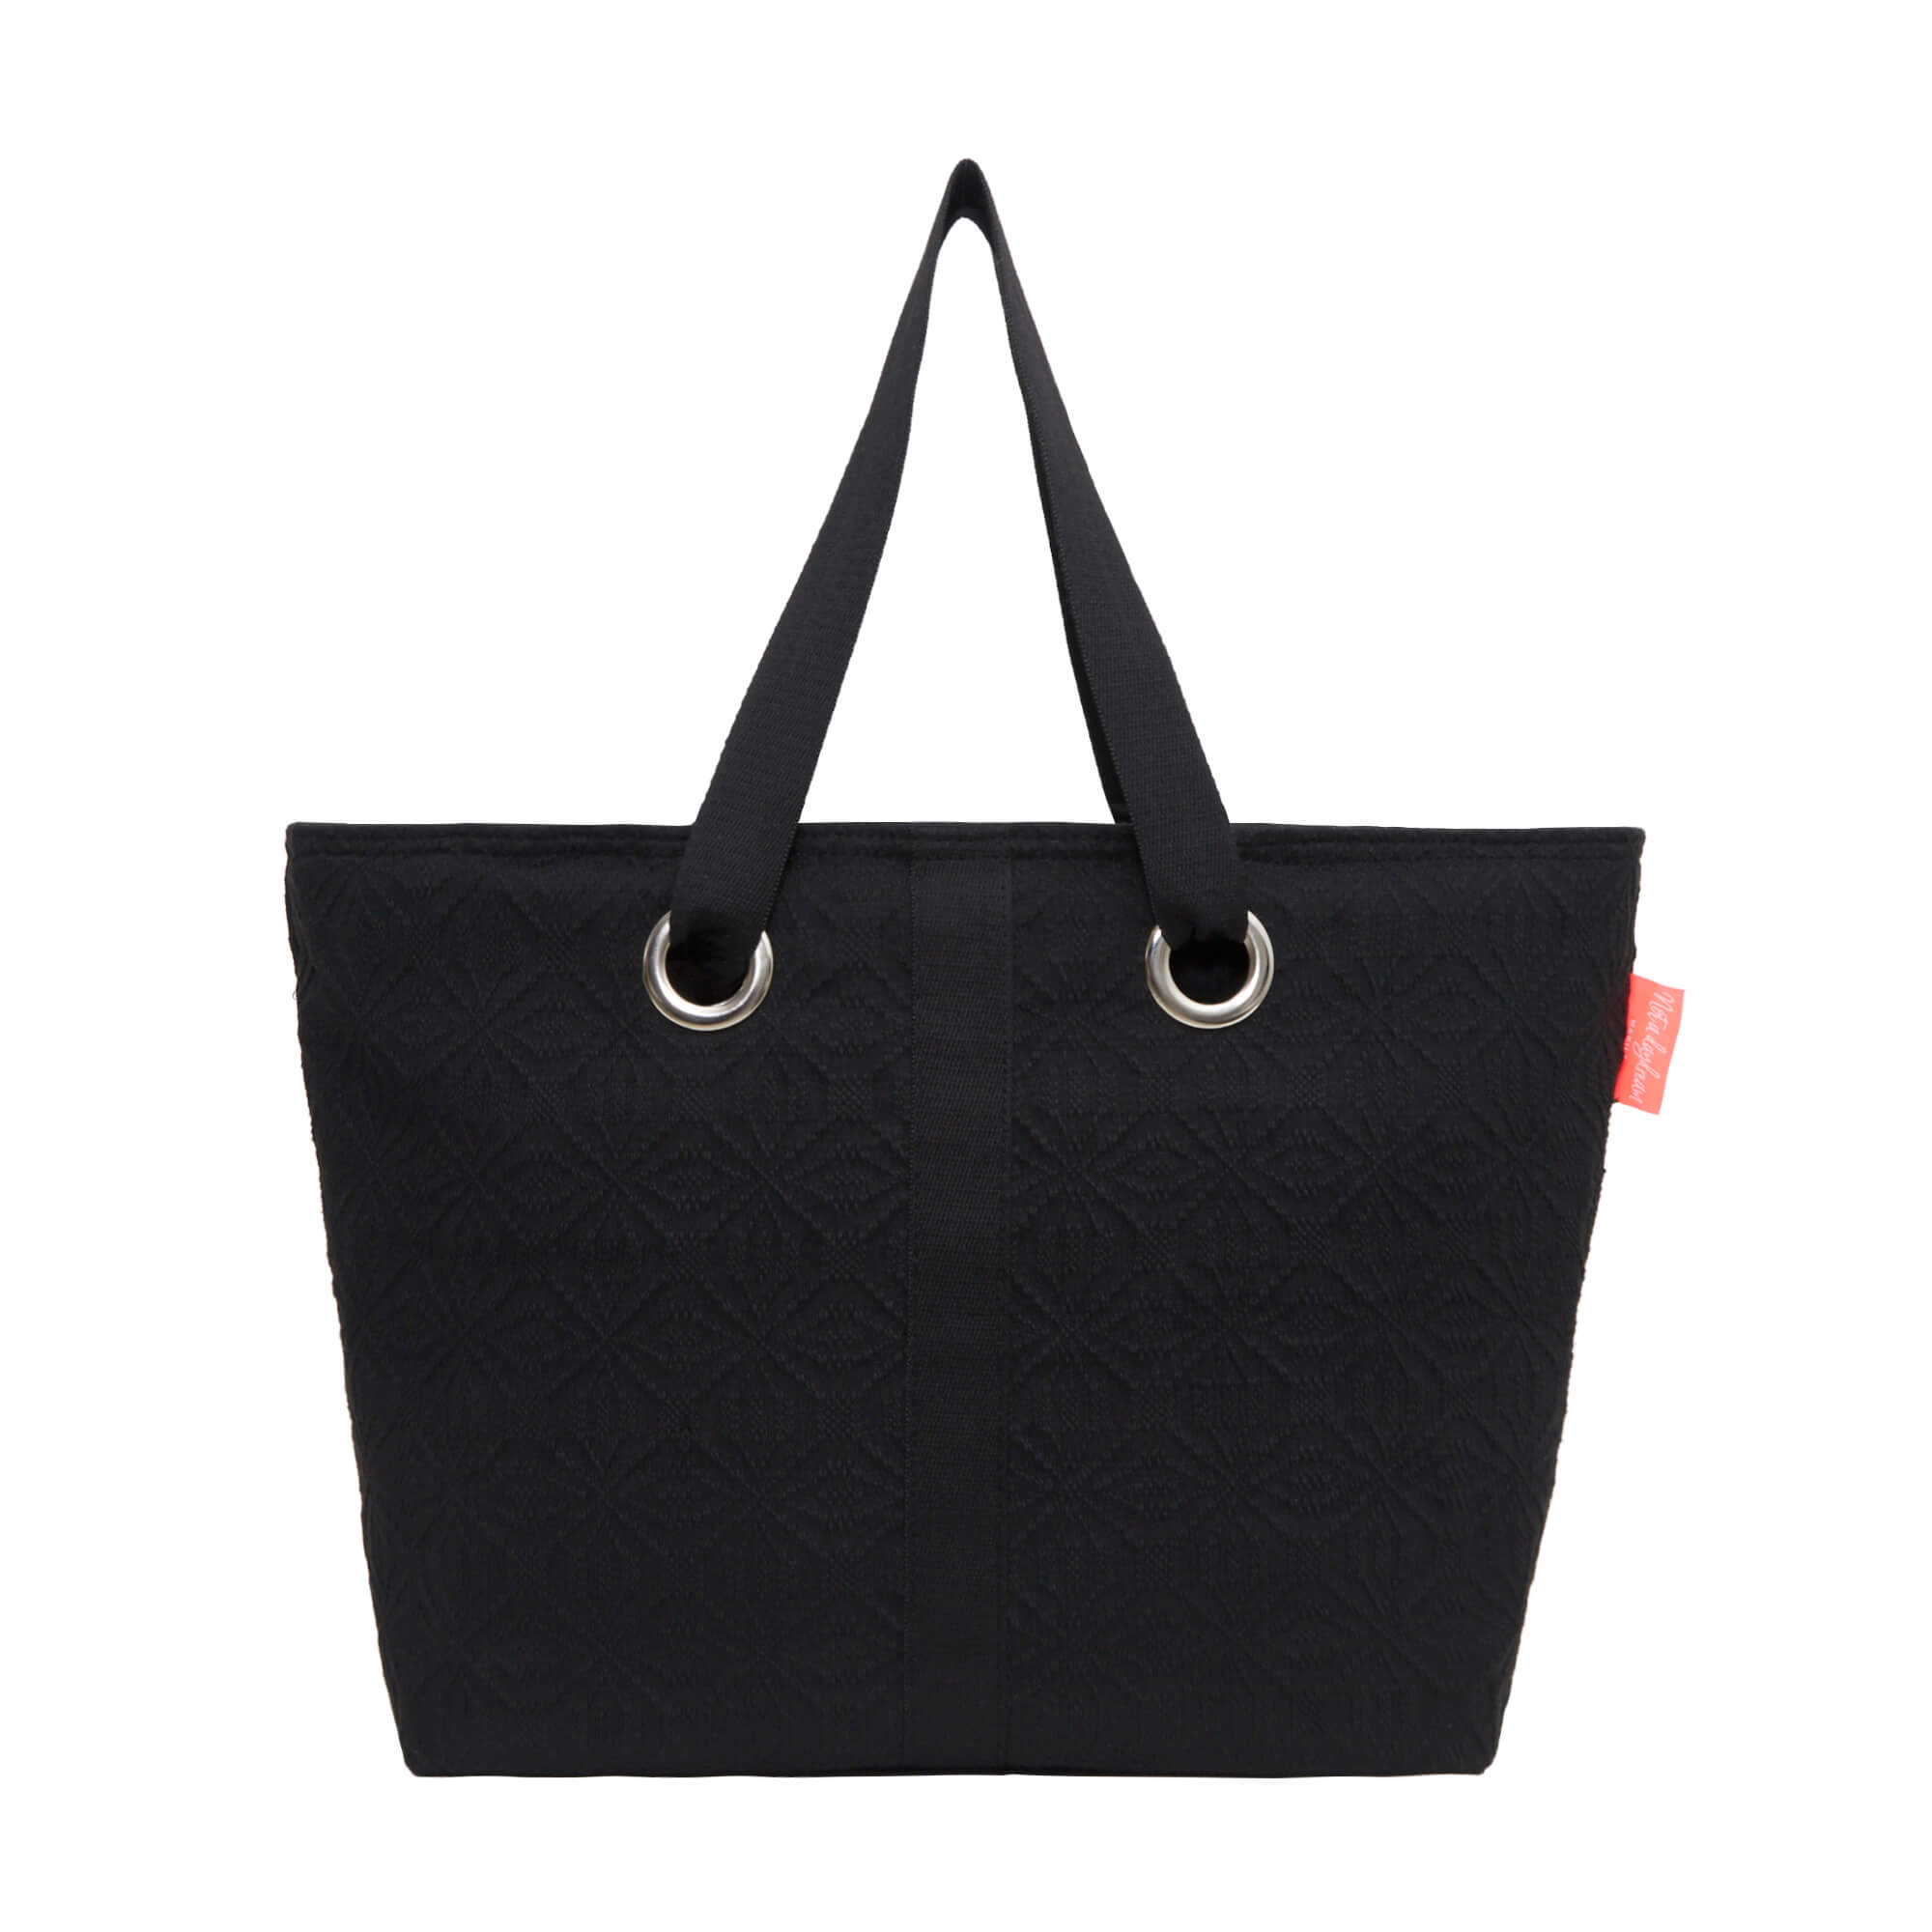 Black Lollipop Beach Bag